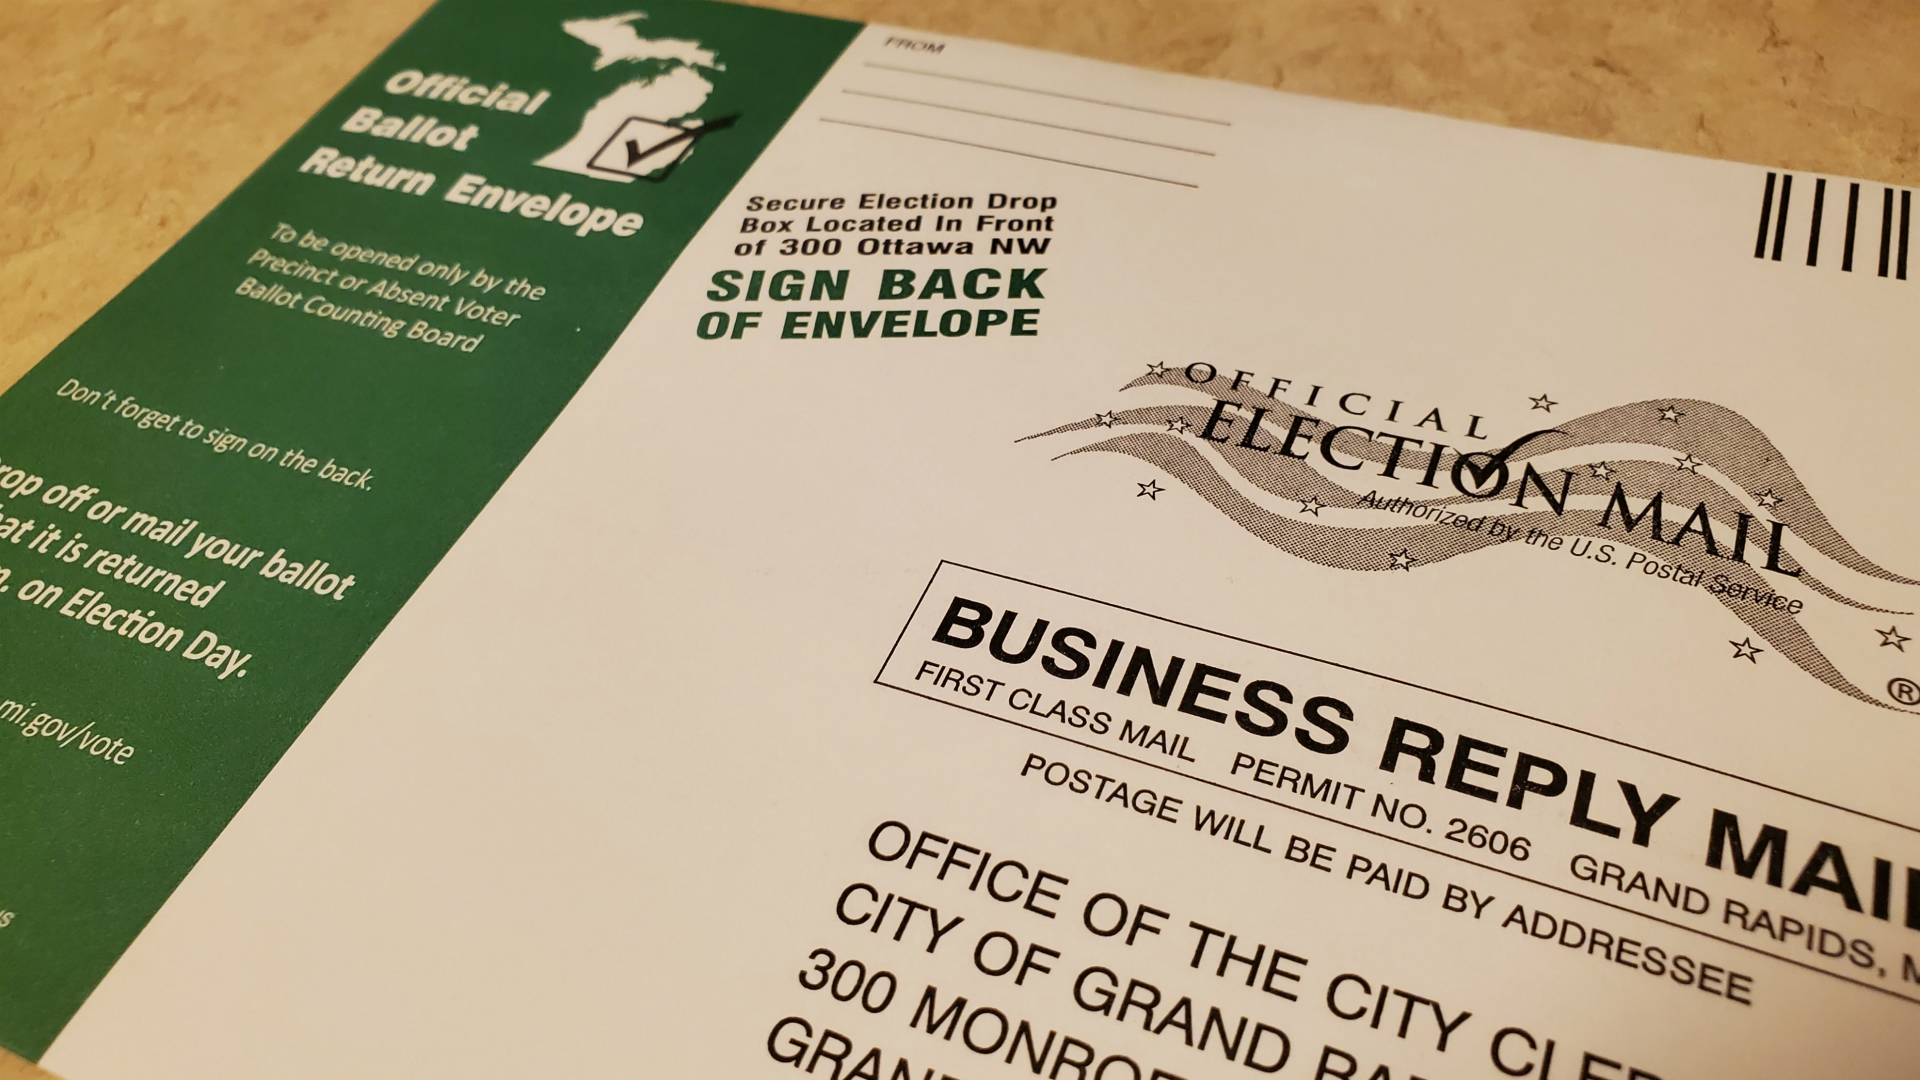 absentee ballot return envelope